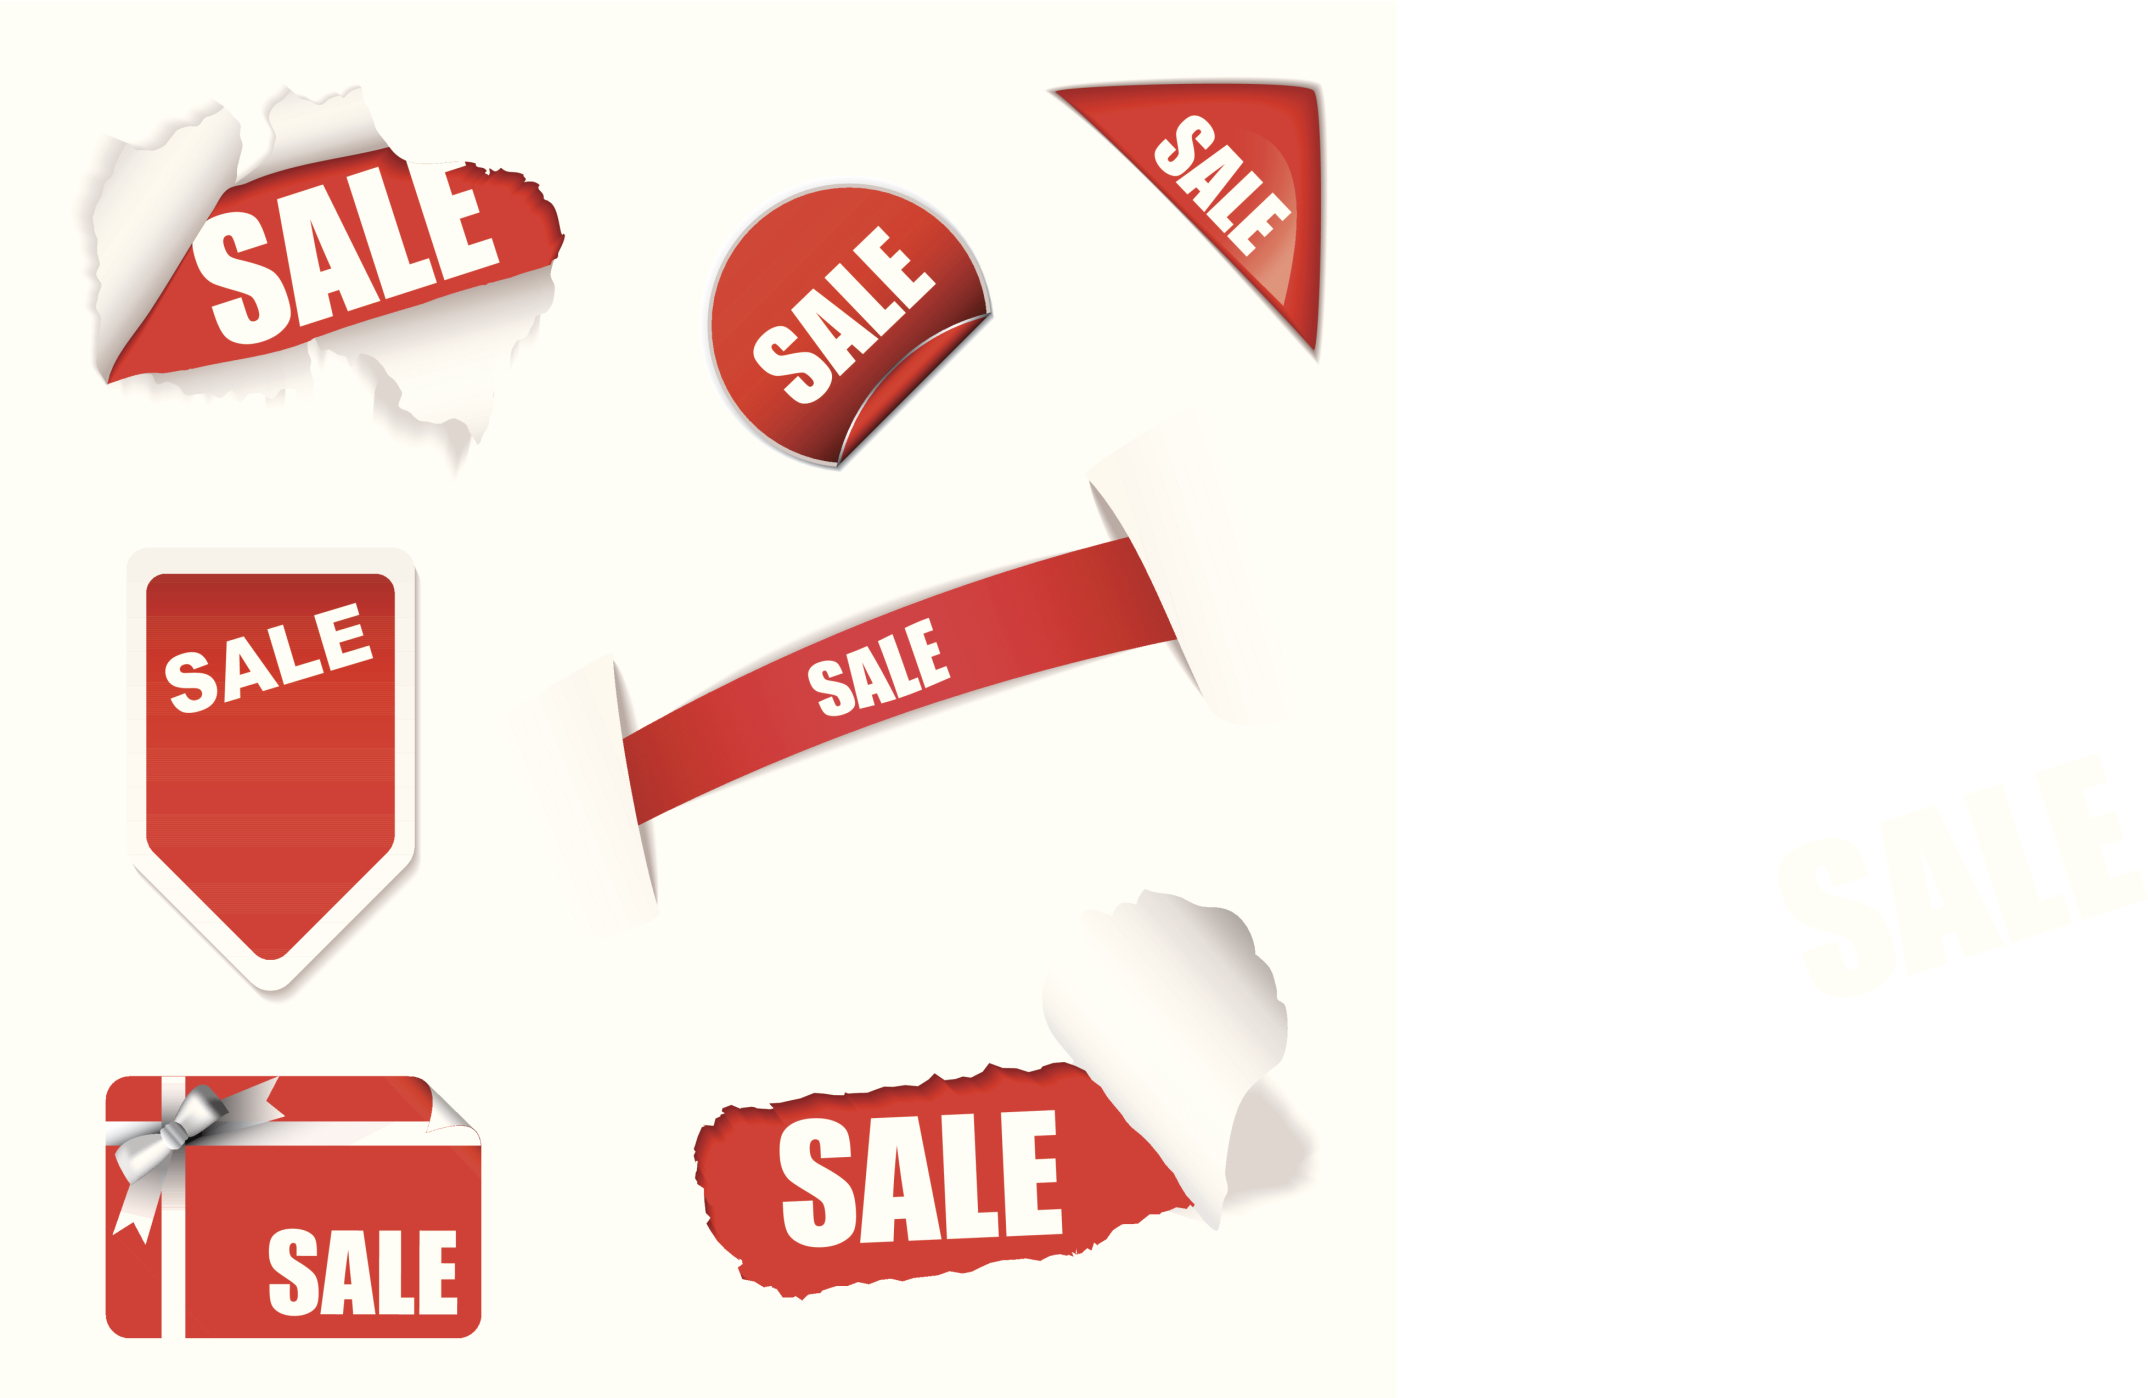 Fatal Sales Failures: Why Not Commoditize?